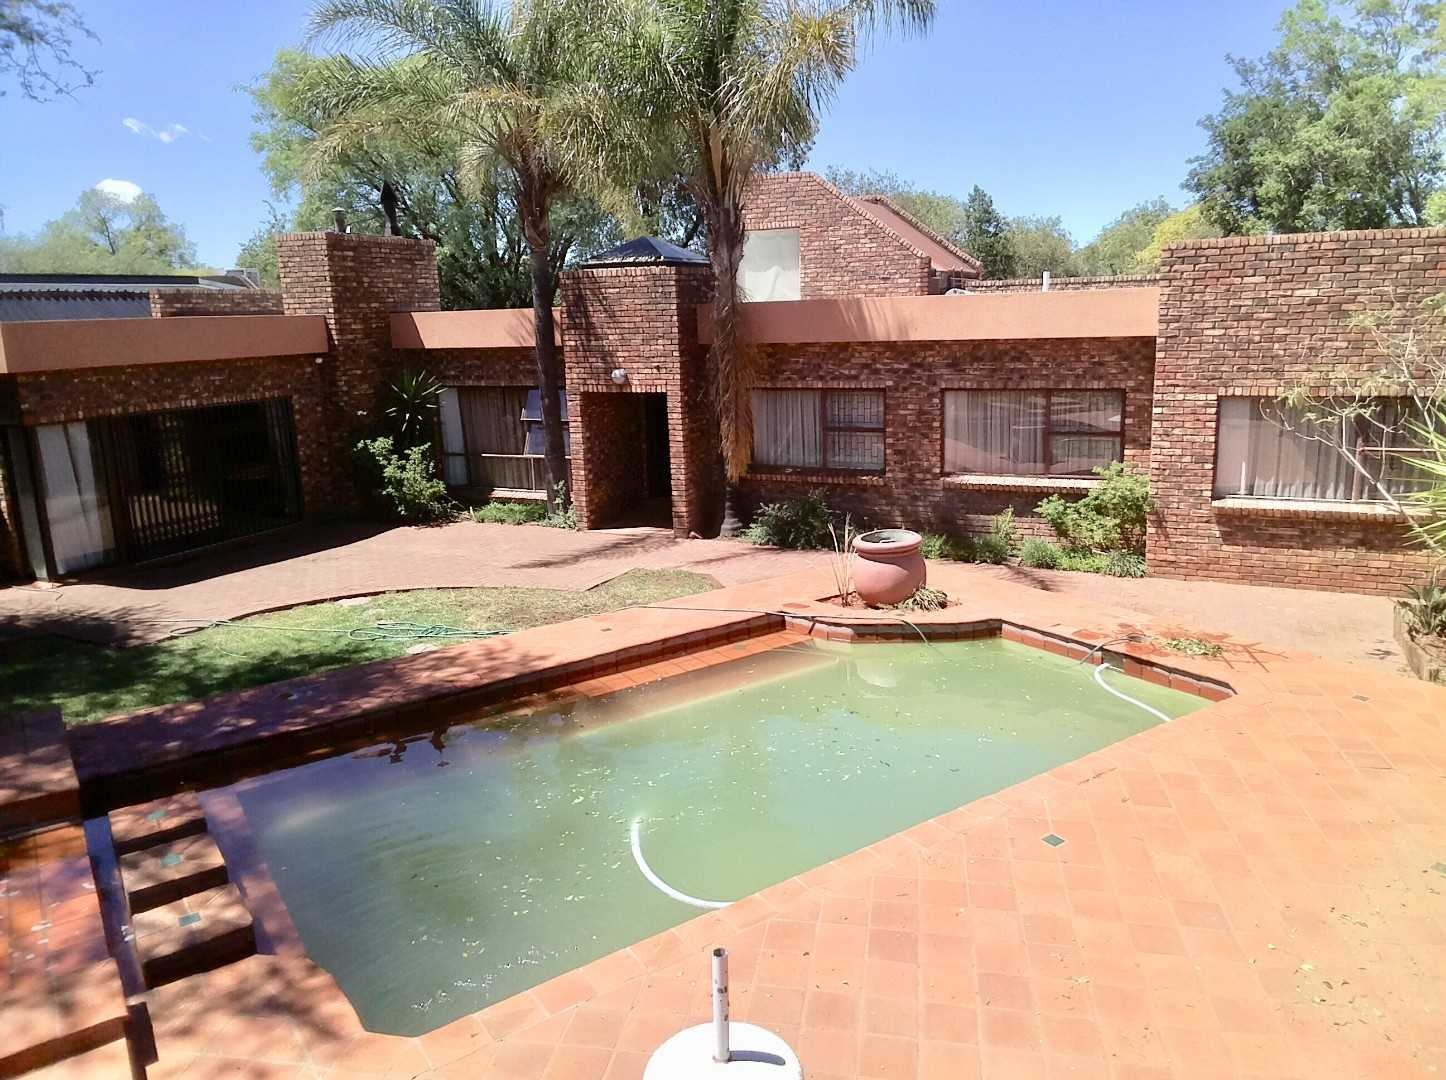 Front View from the lapa with braai. Low maintenance home with 5 bedrooms 4 bathrooms, 4 living rooms, 4 garages. Pool & Lapa.